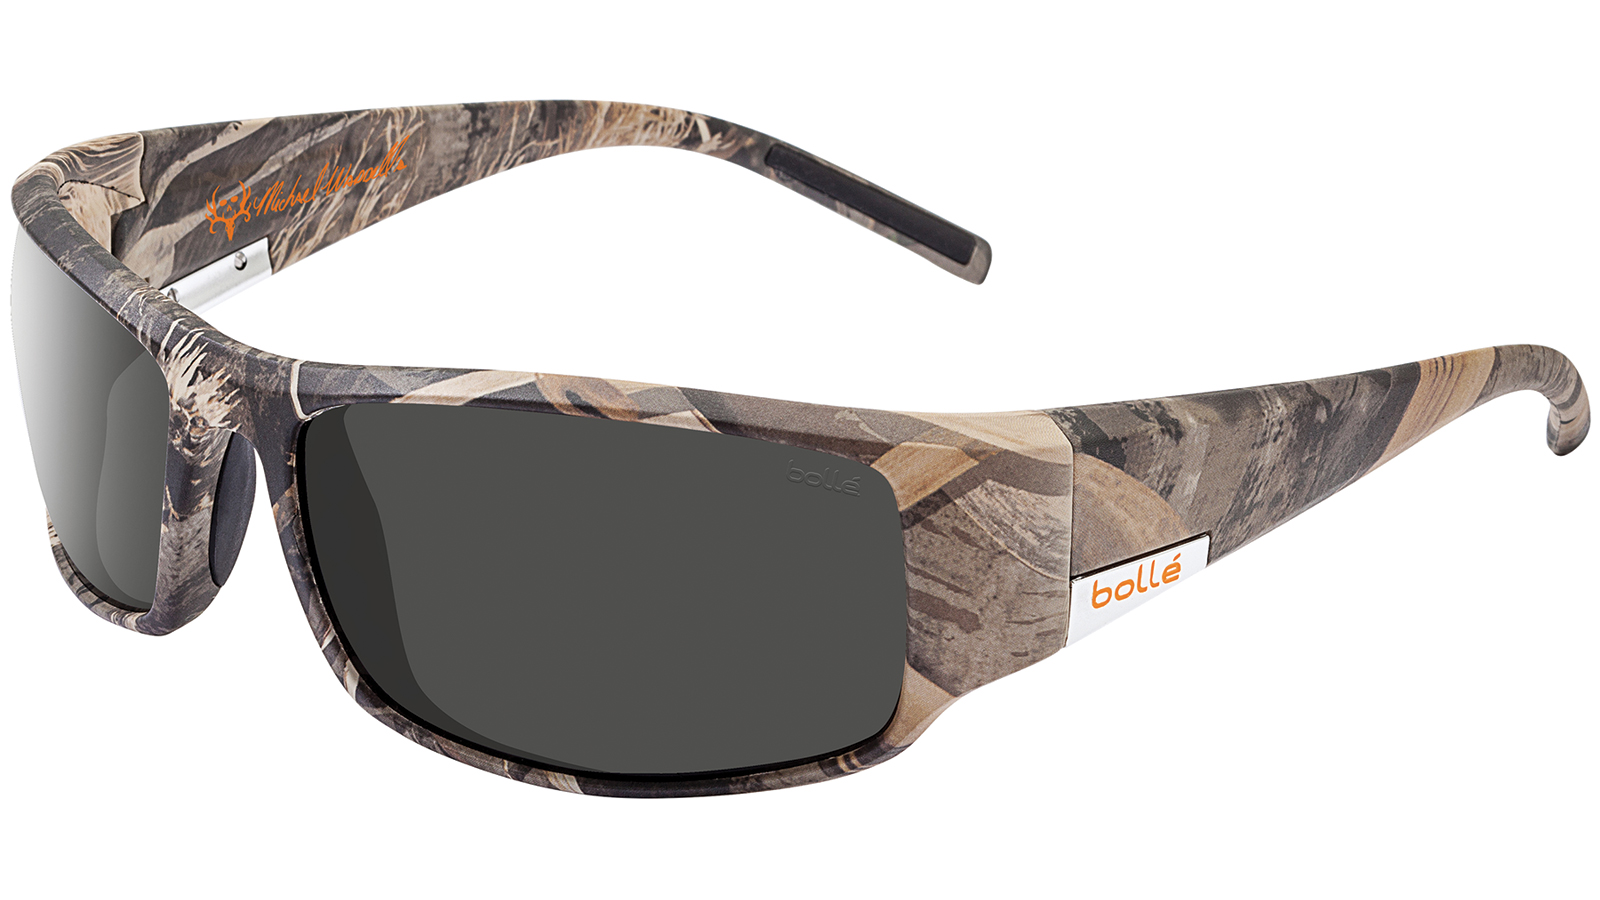 Bolle 12038 King Shooting|Sporting Glasses Realtree Max-5